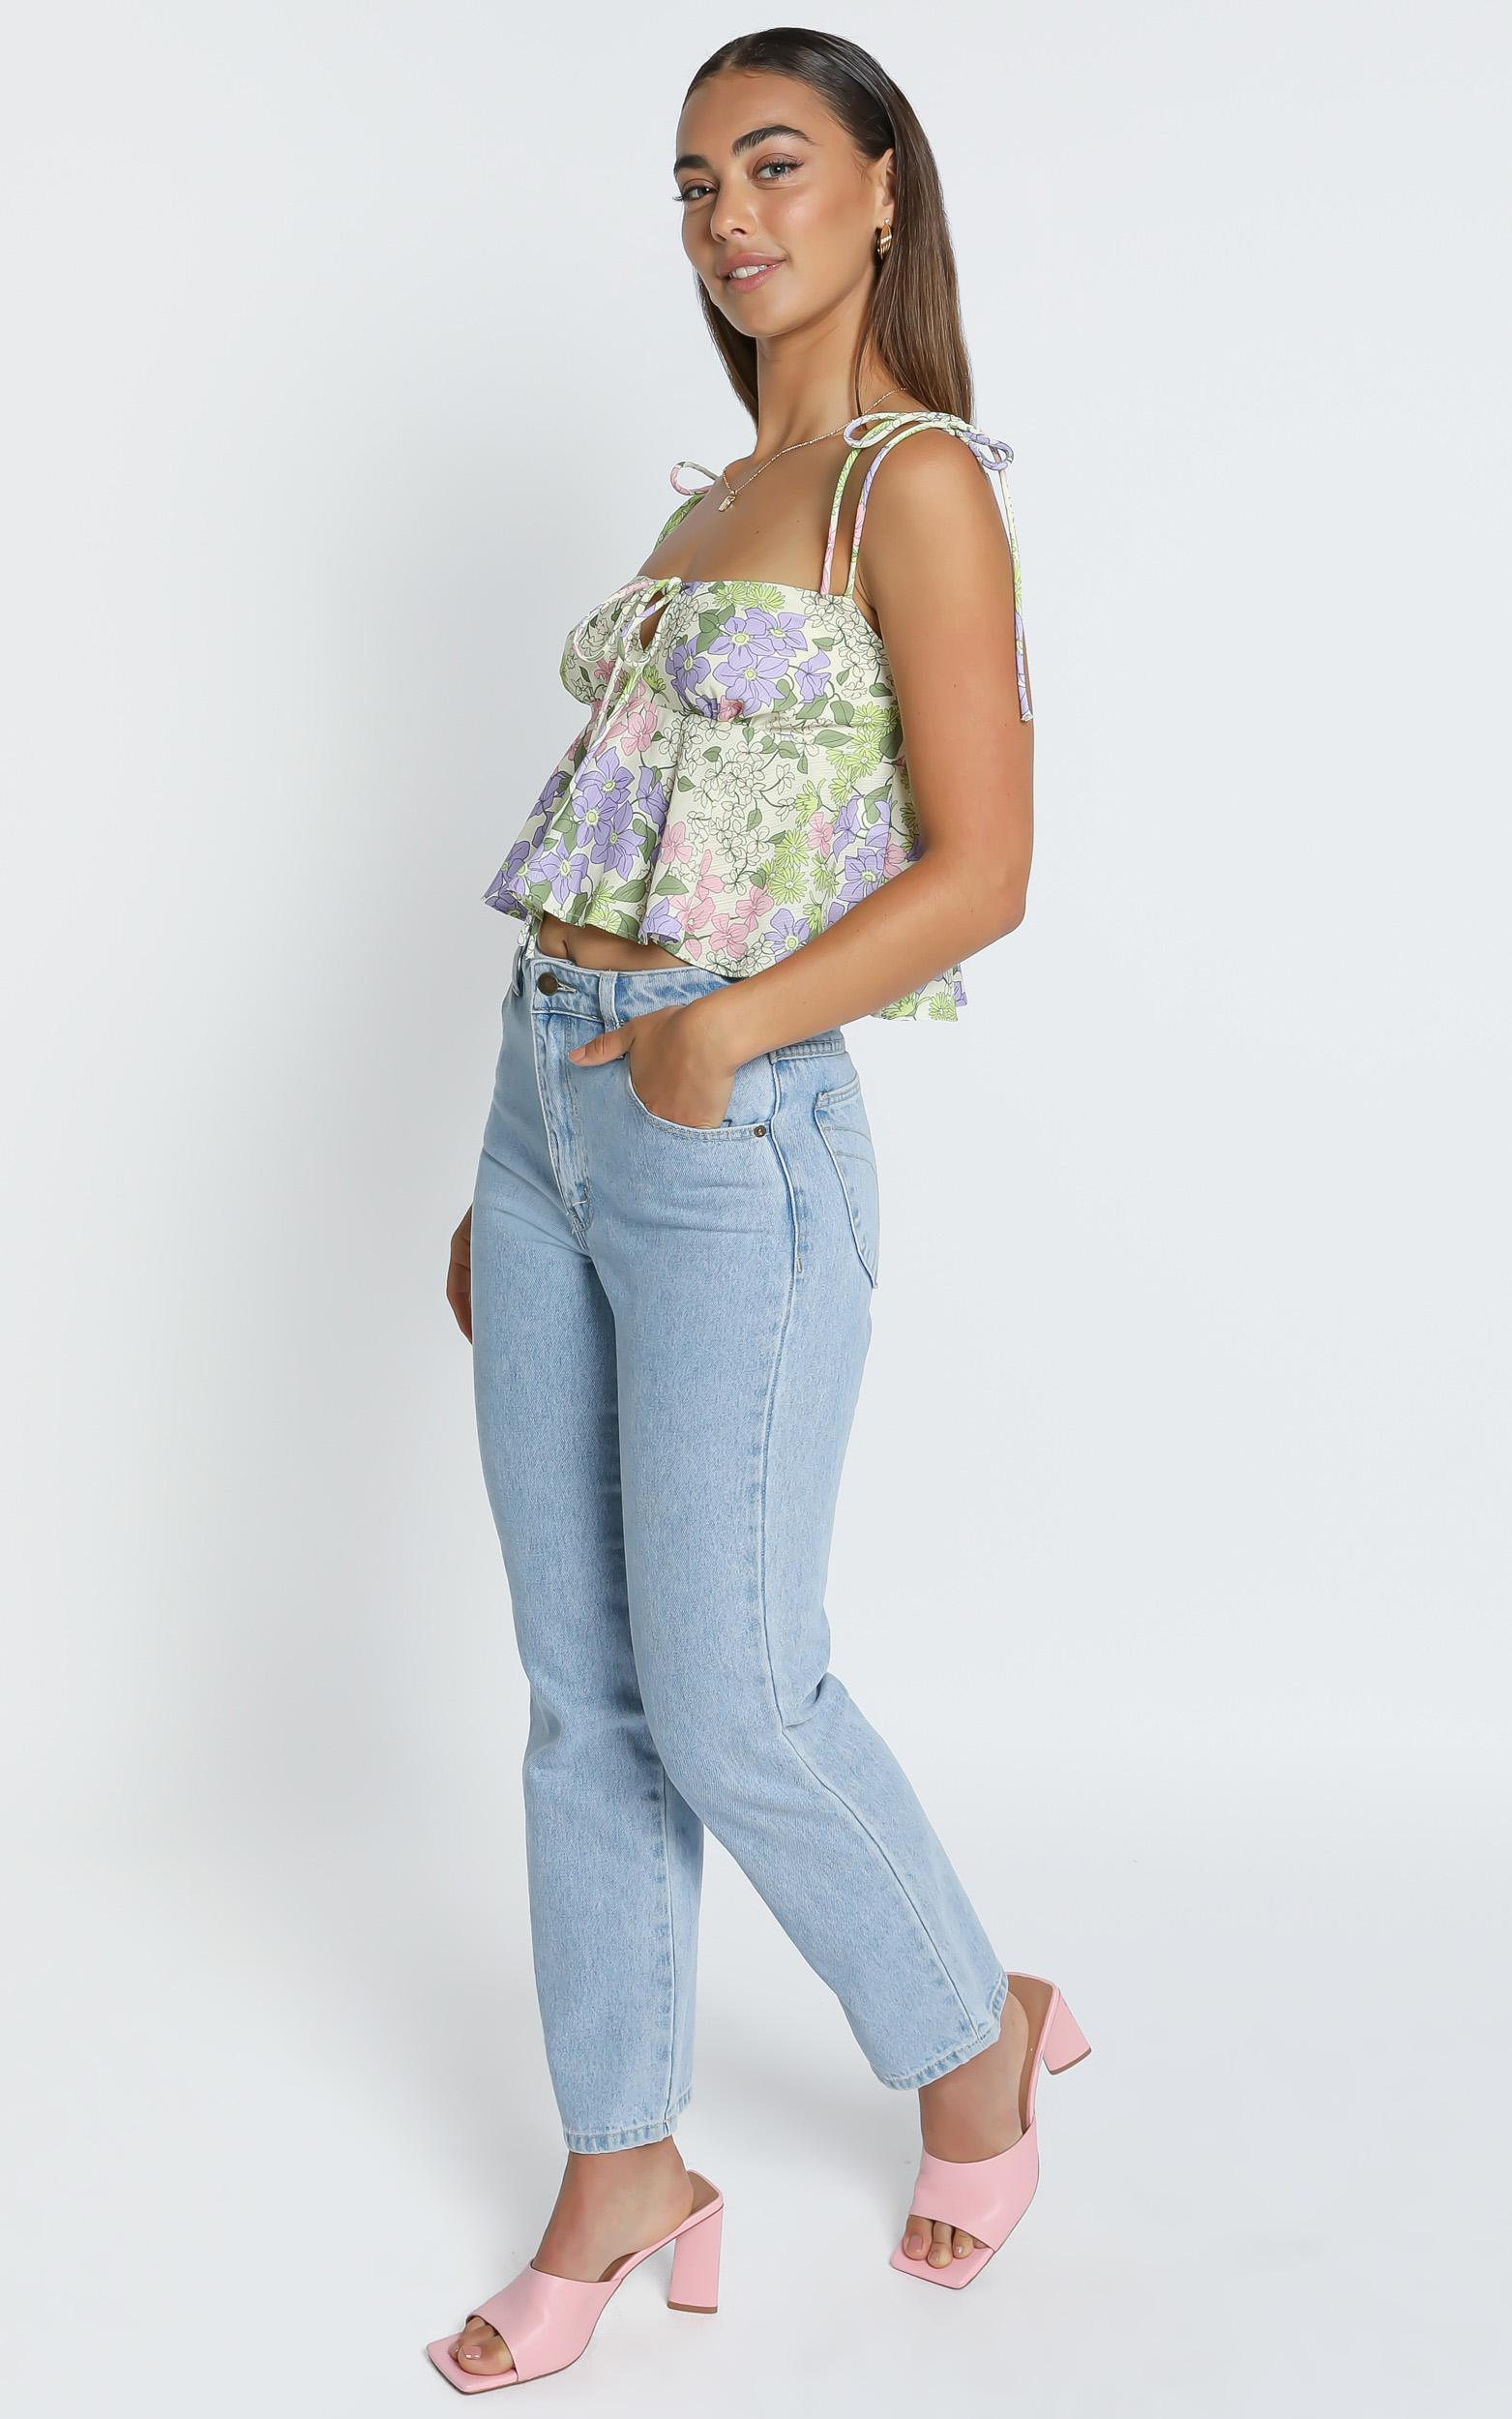 Aint No Sweetie Top in Garden Floral - 4 (XXS), Green, hi-res image number null